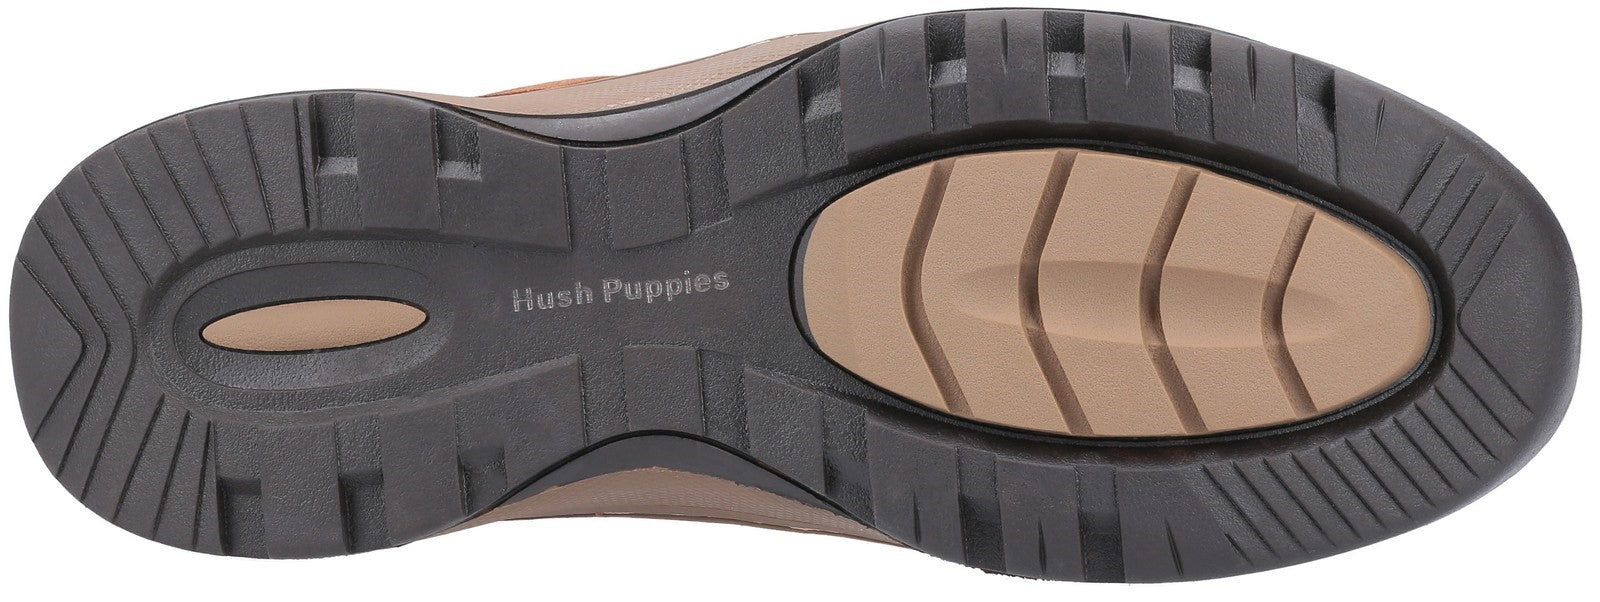 Hush Puppies Men's Tucker Lace Shoe Various Colours 28379